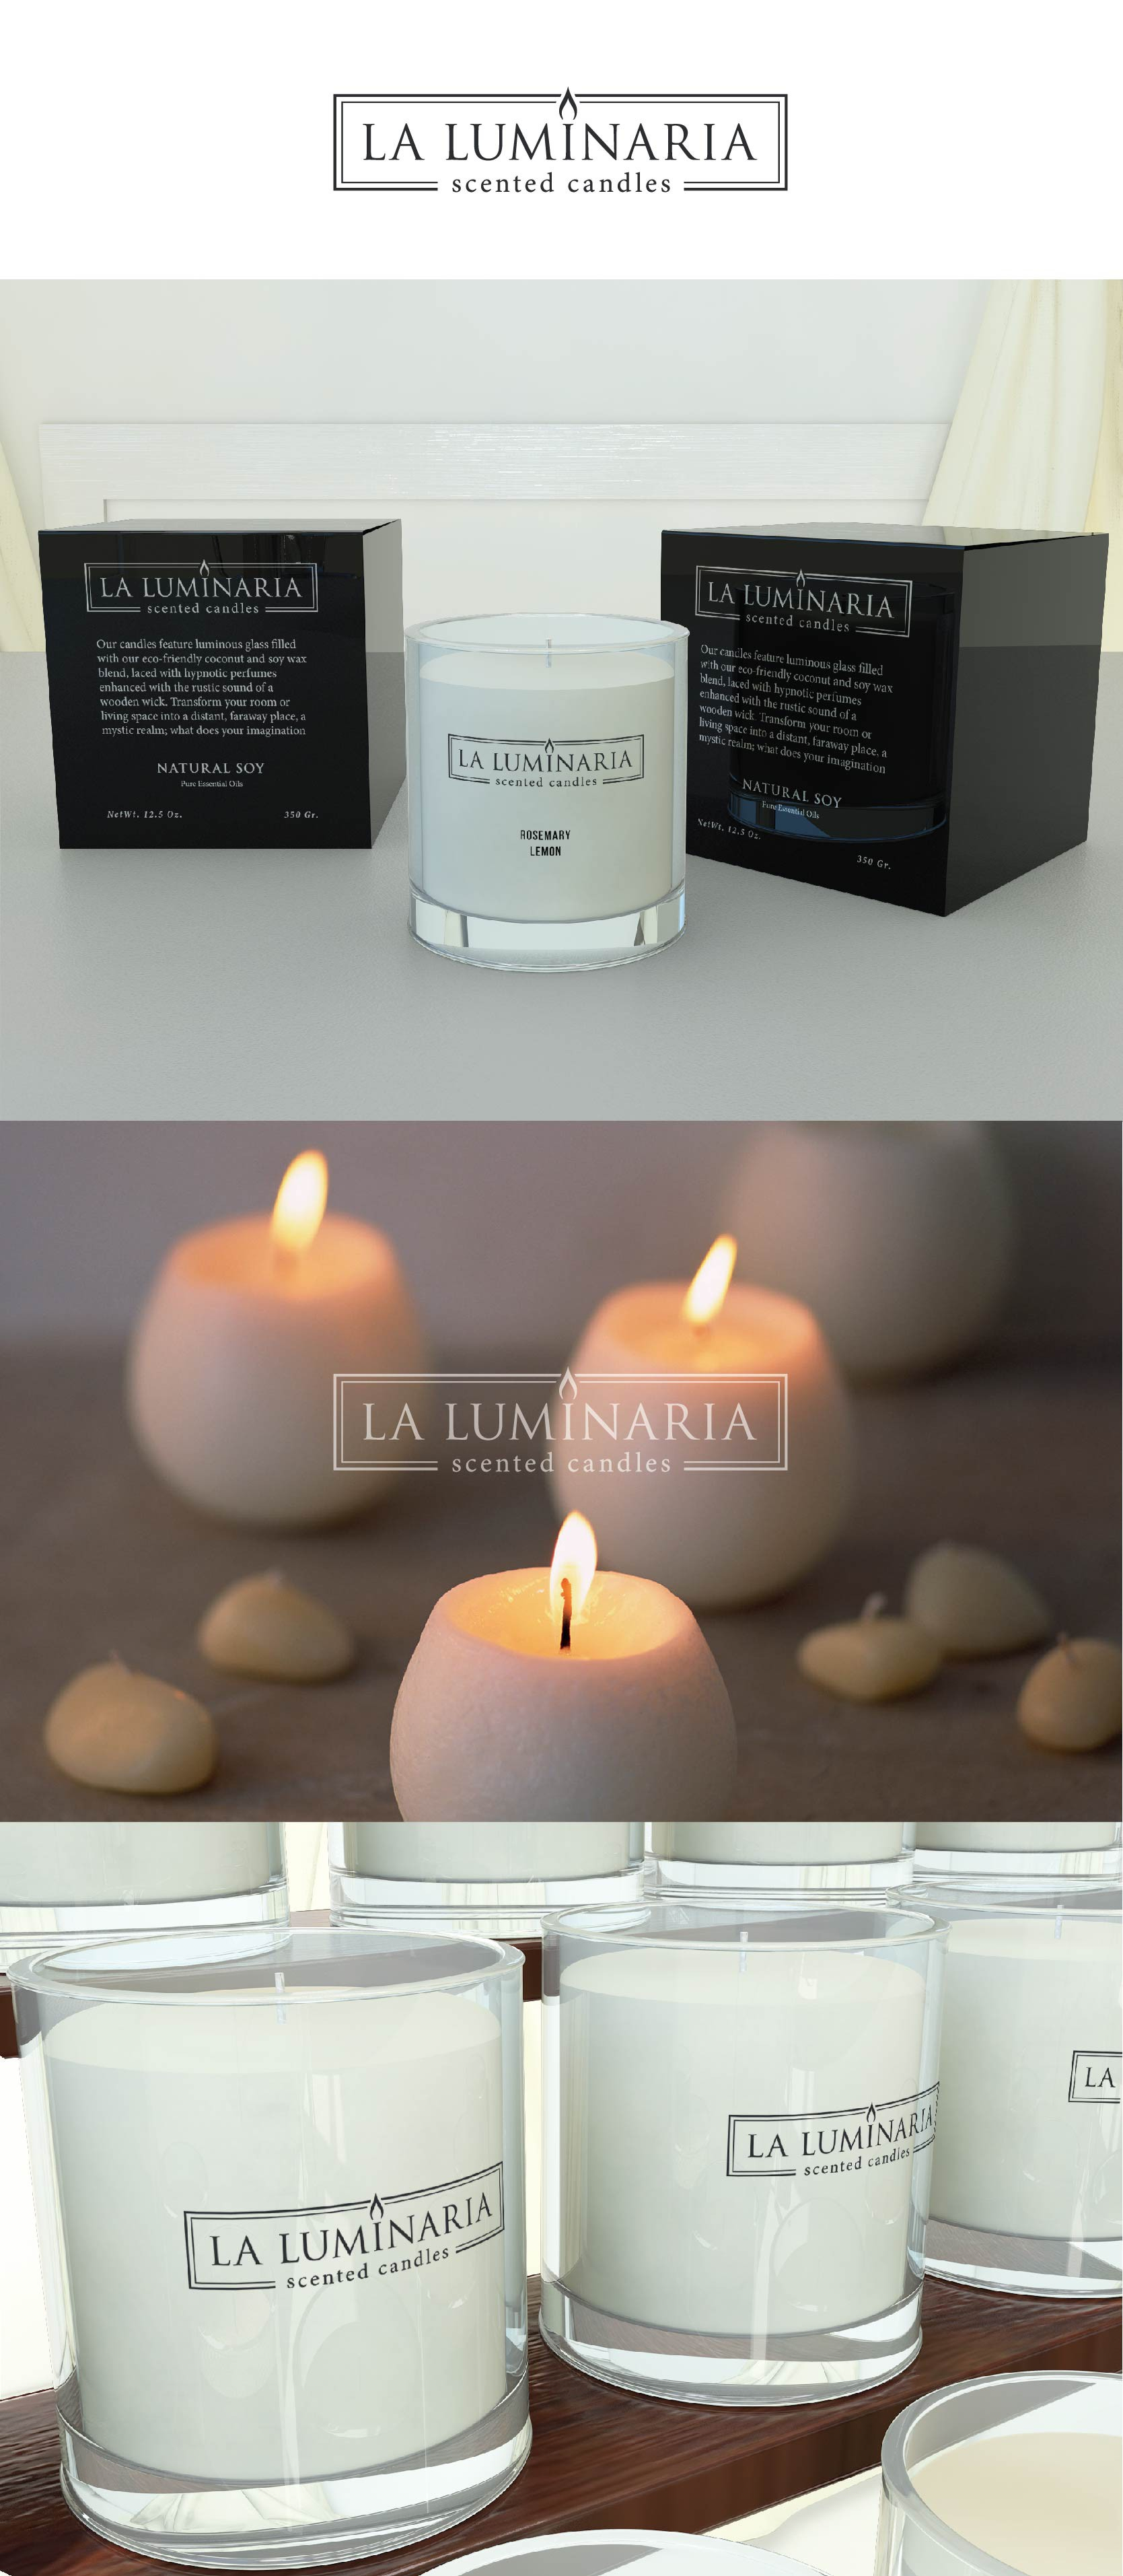 Design a sofisticated logo for LA LUMINARIA candels